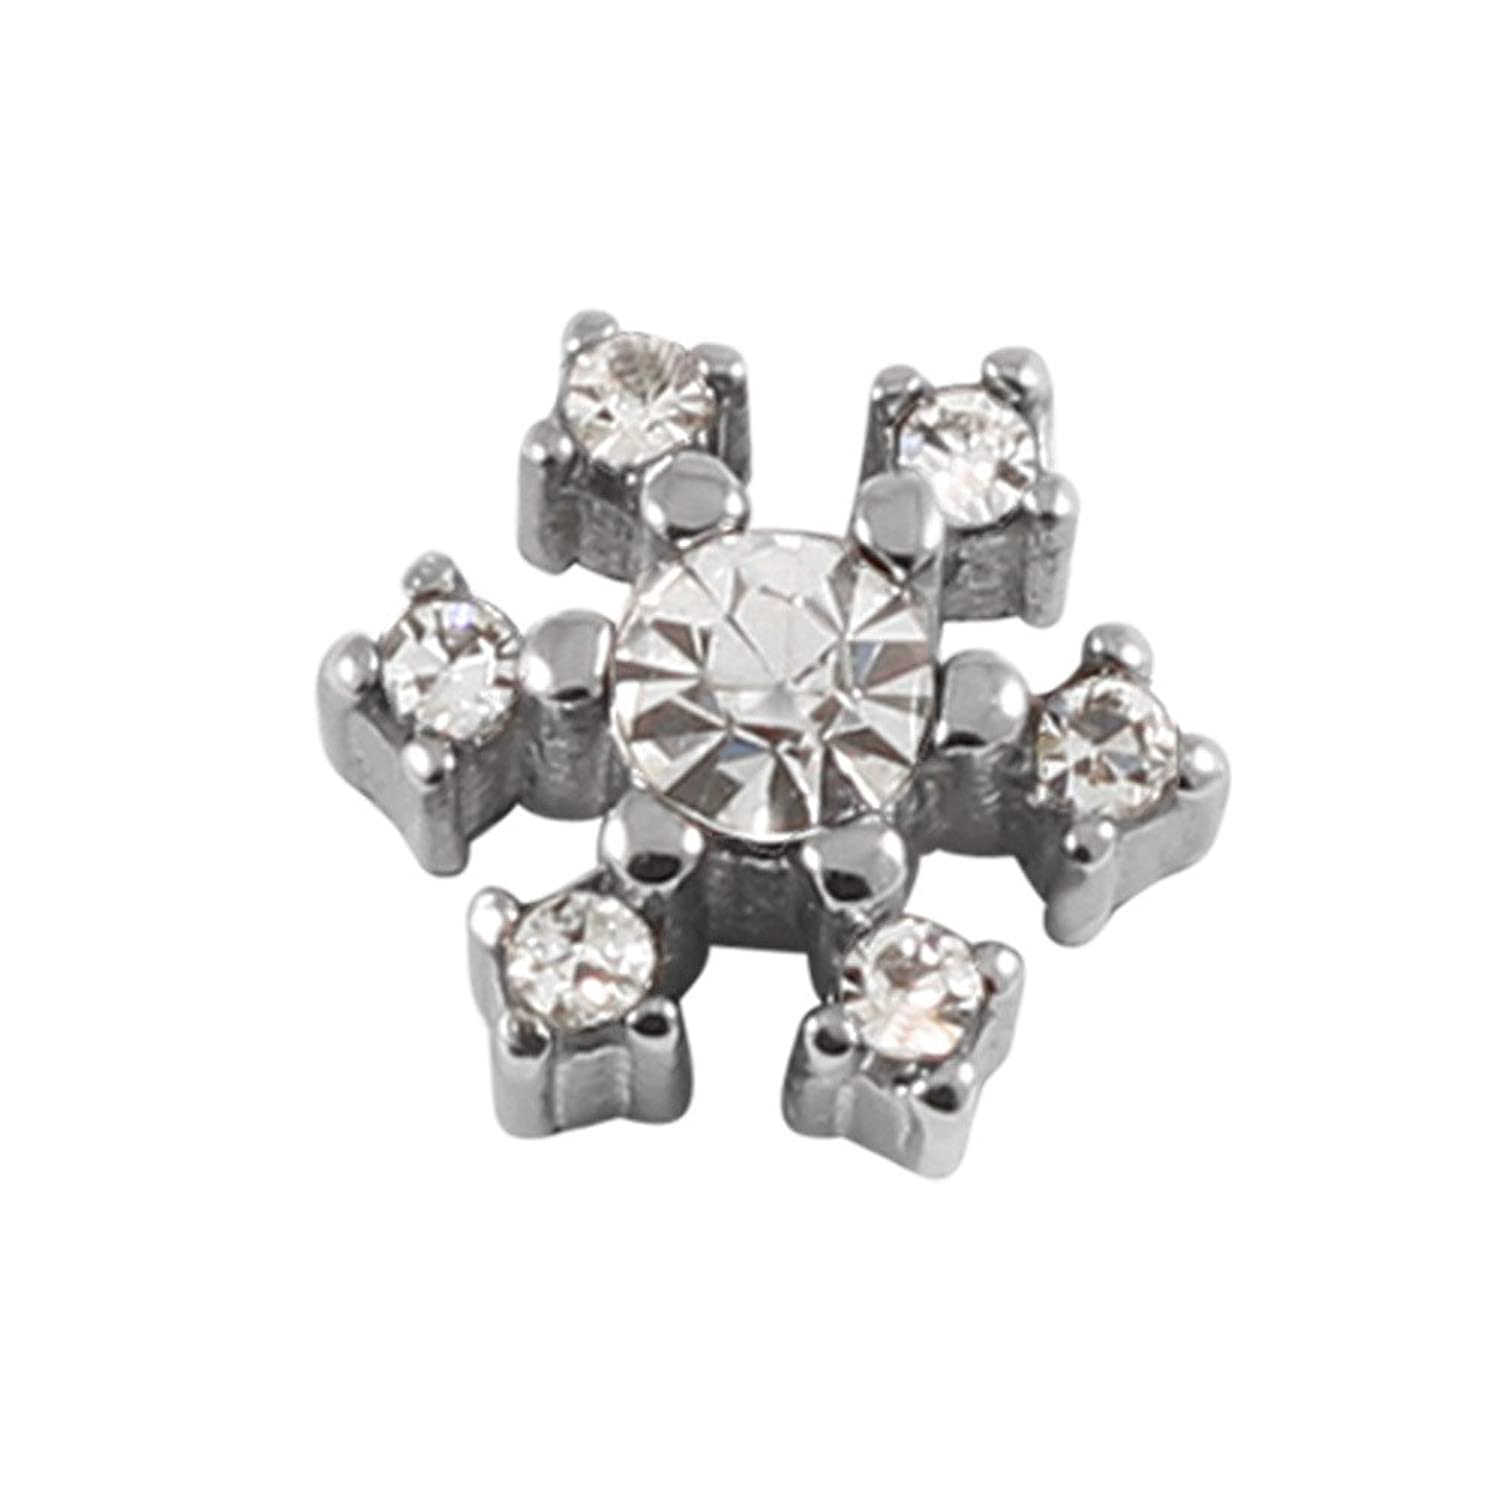 290ecadef Micro Dermal Anchor Attachment. Jewelled Snowflake top only. Surgical  Steel. for use with